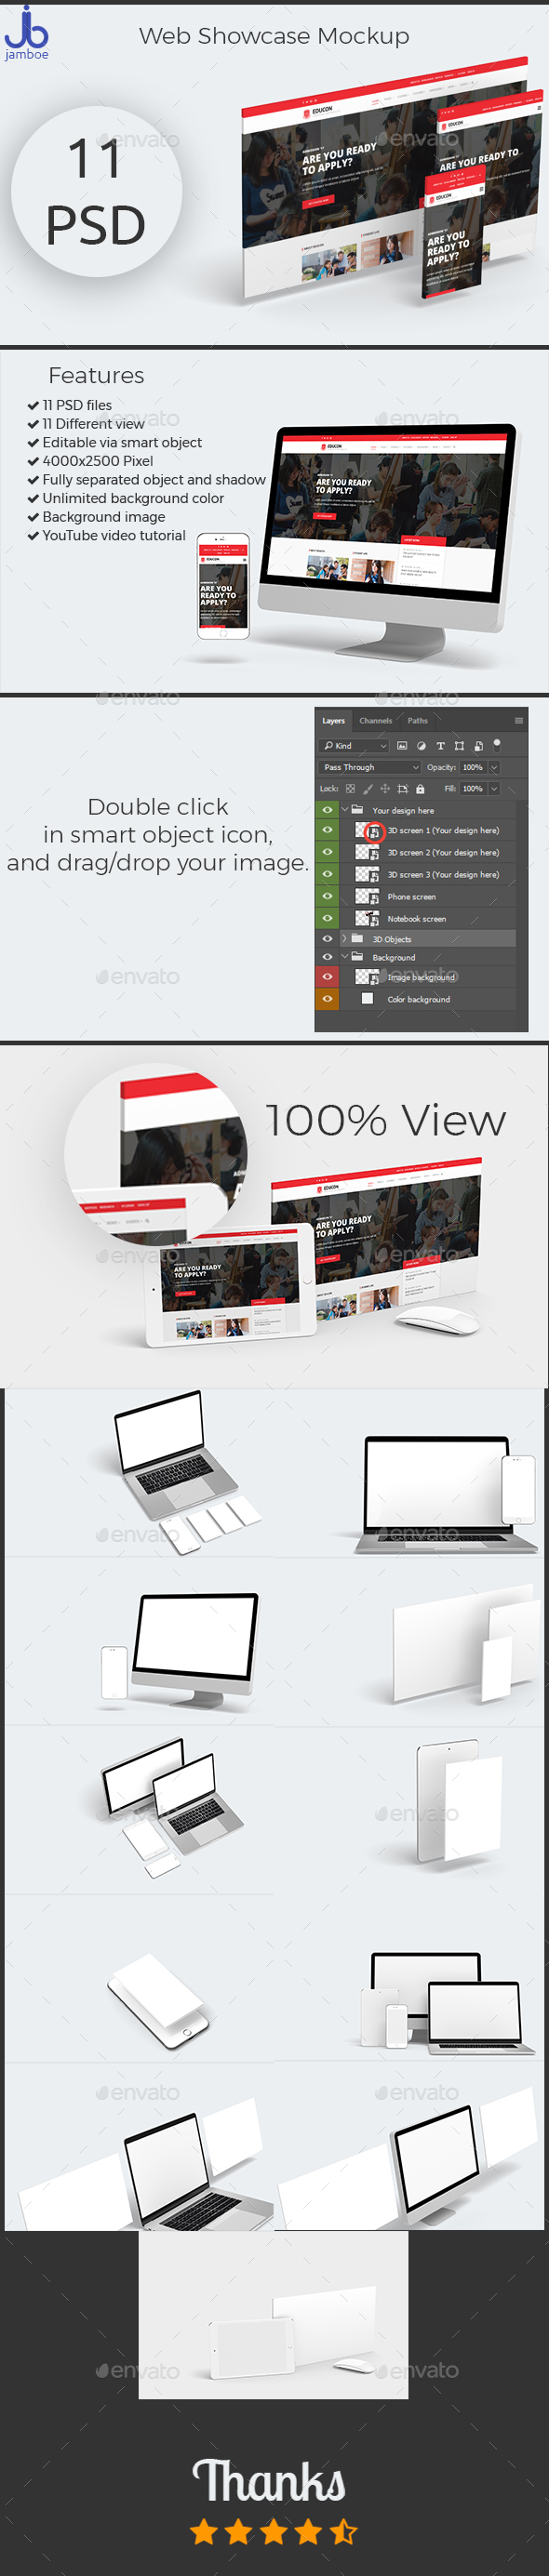 3D Web Showcase Mockup (11 PSD Files)